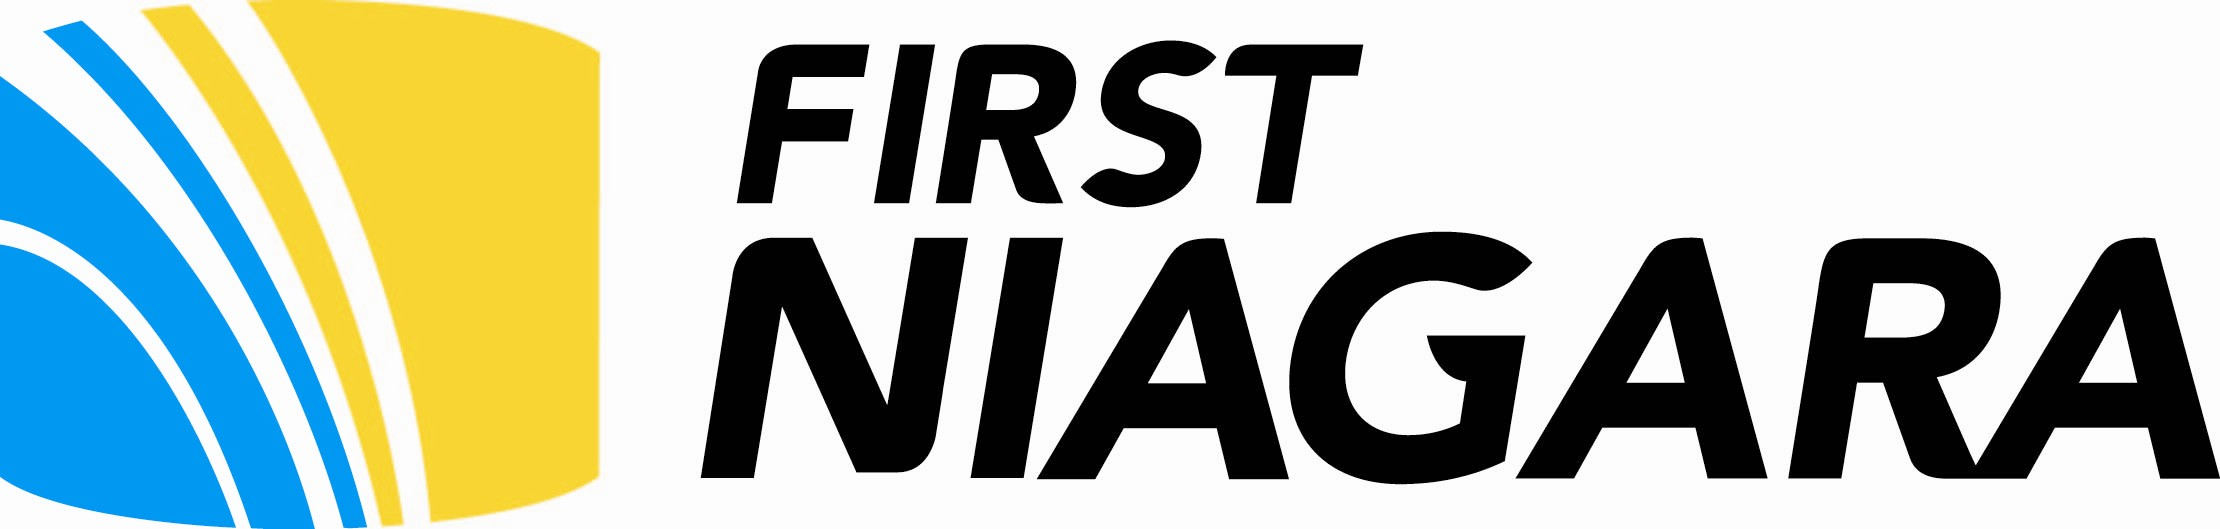 First Niagara logo